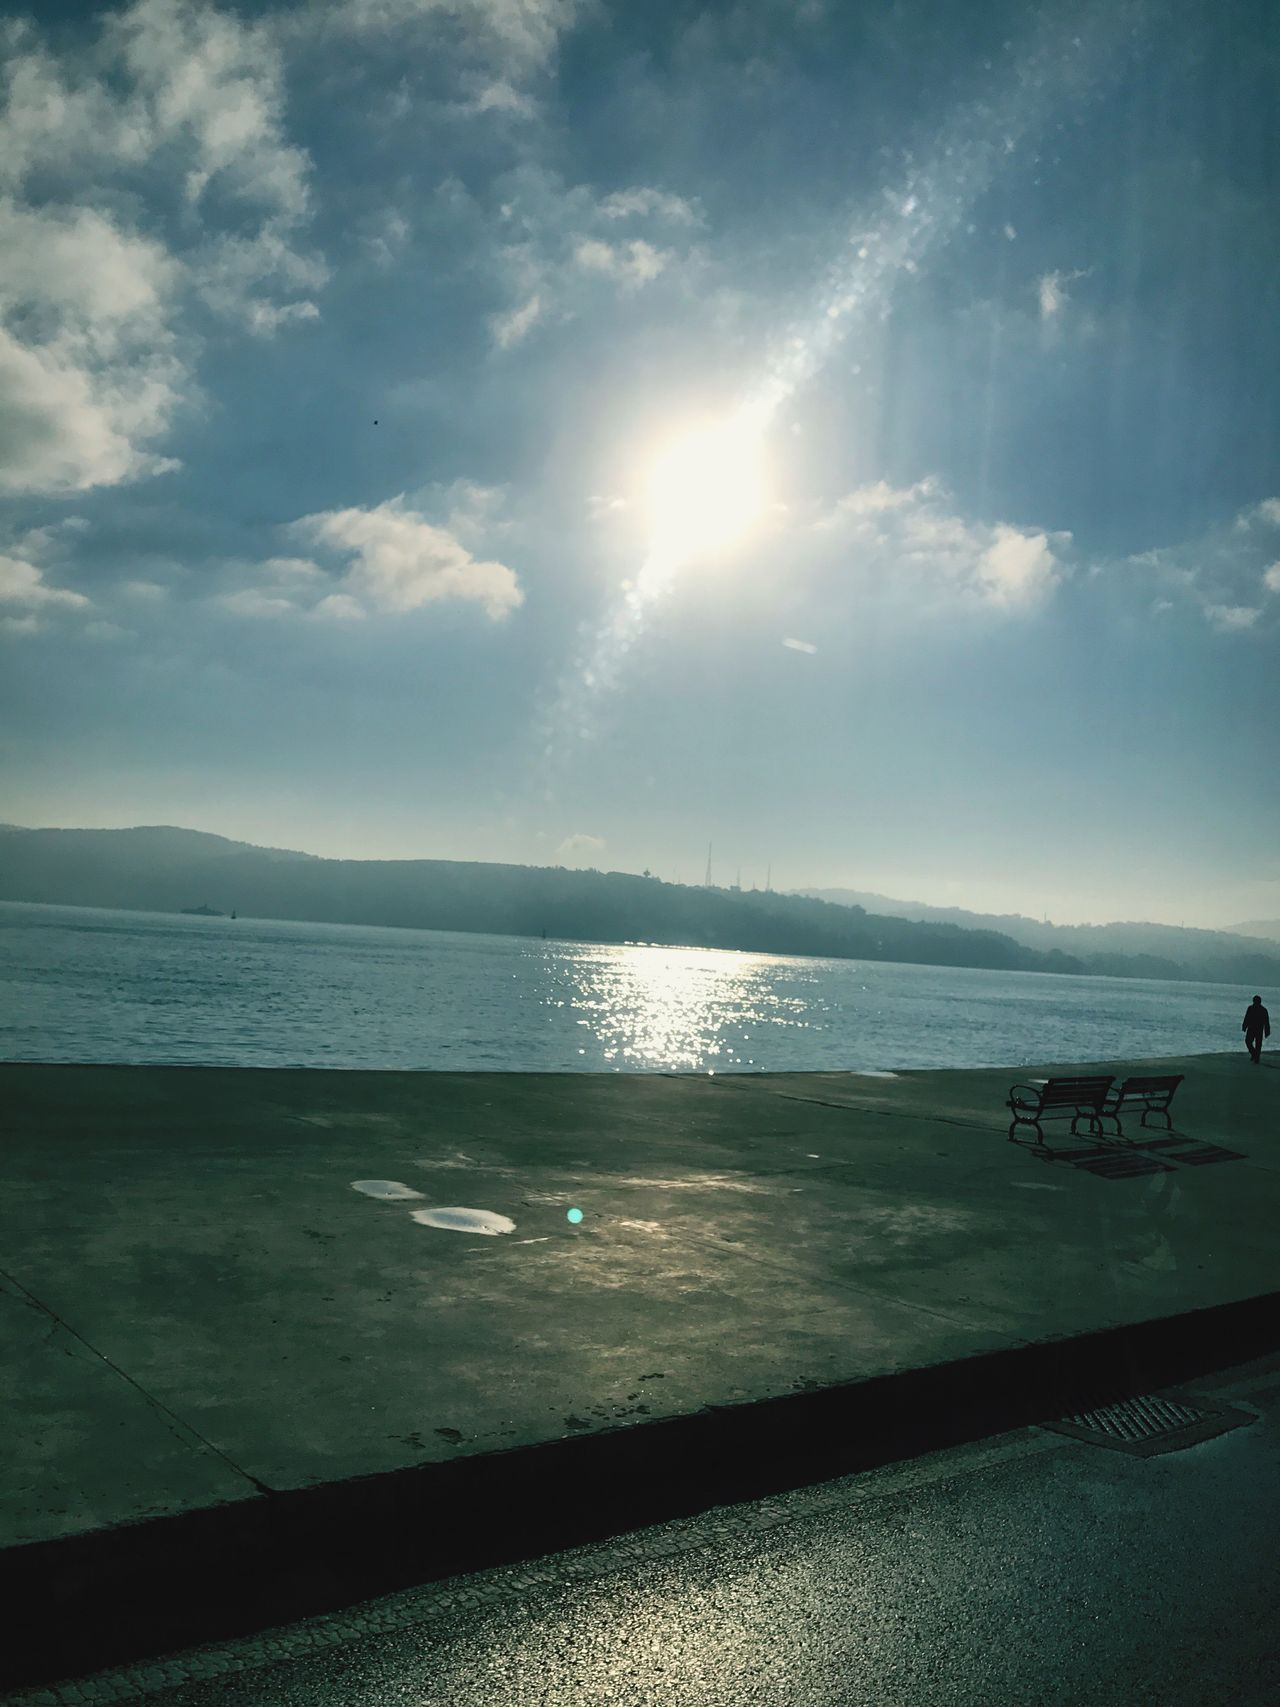 Sky Water Sea Cloud - Sky Sunlight Nature Scenics Day Beauty In Nature Tranquility Horizon Over Water Beach No People Outdoors